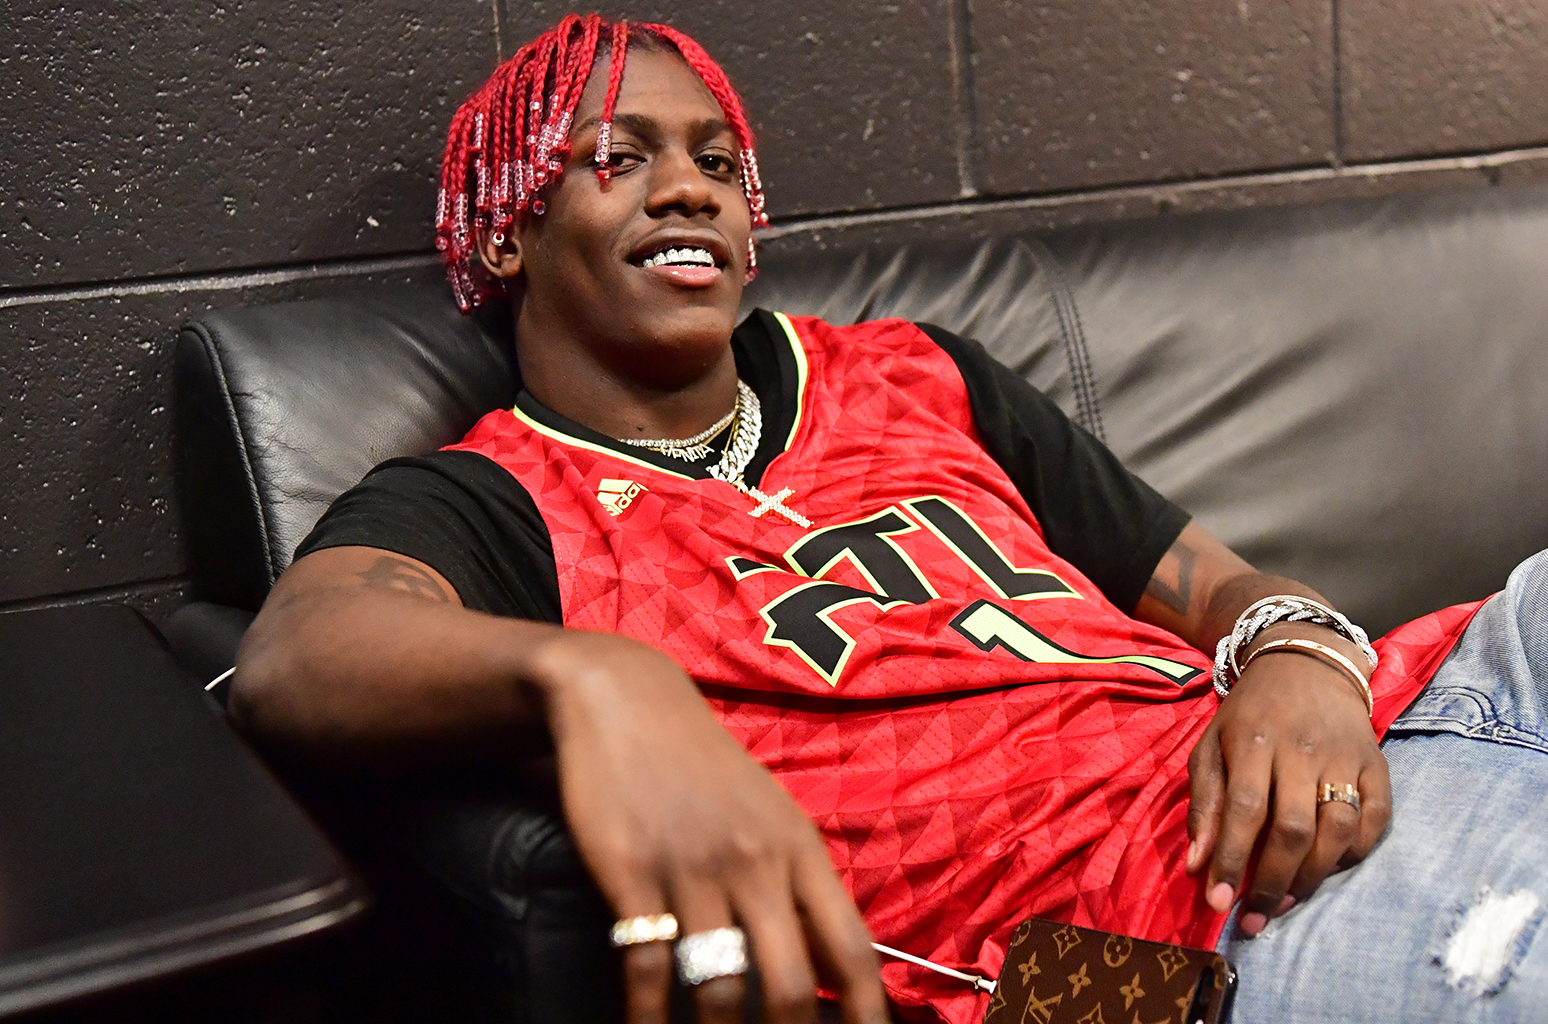 Lil Yachty David Hasselhoff FaceTiming Watch Their Chat 1548x1024